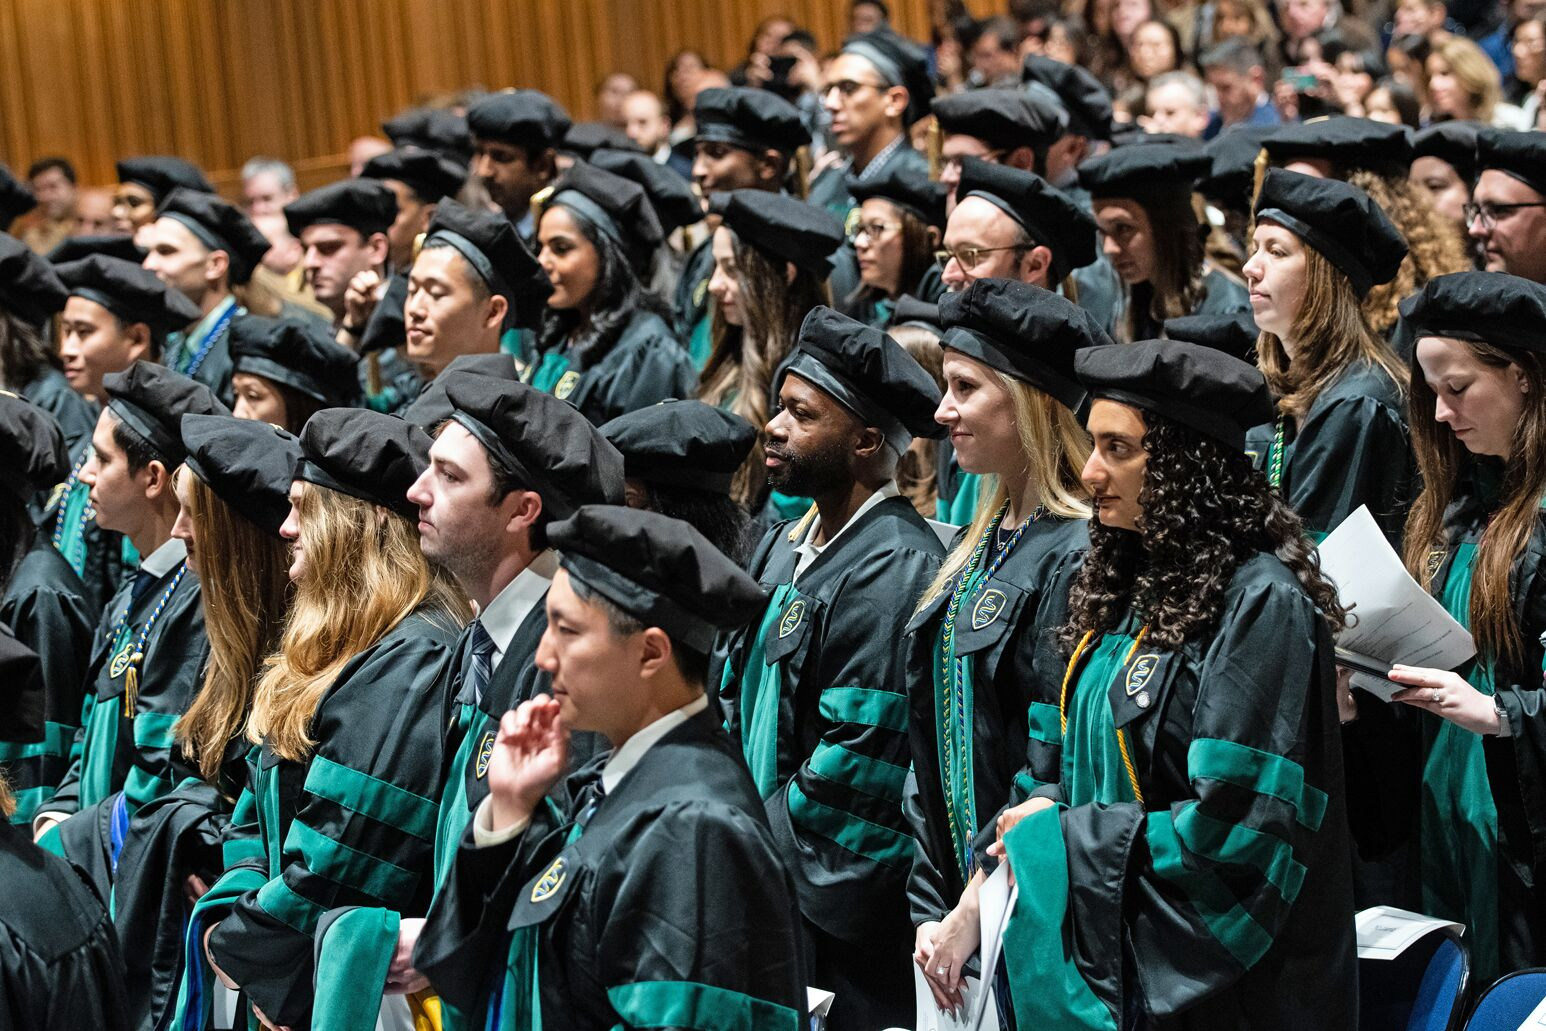 The Zucker School of Medicine's graduating class featured 96 students, including three MD/PhD candidates, the school's first two MD/MPH candidates and the first two graduates of Hofstra's 4+4 BS/BA-MD program